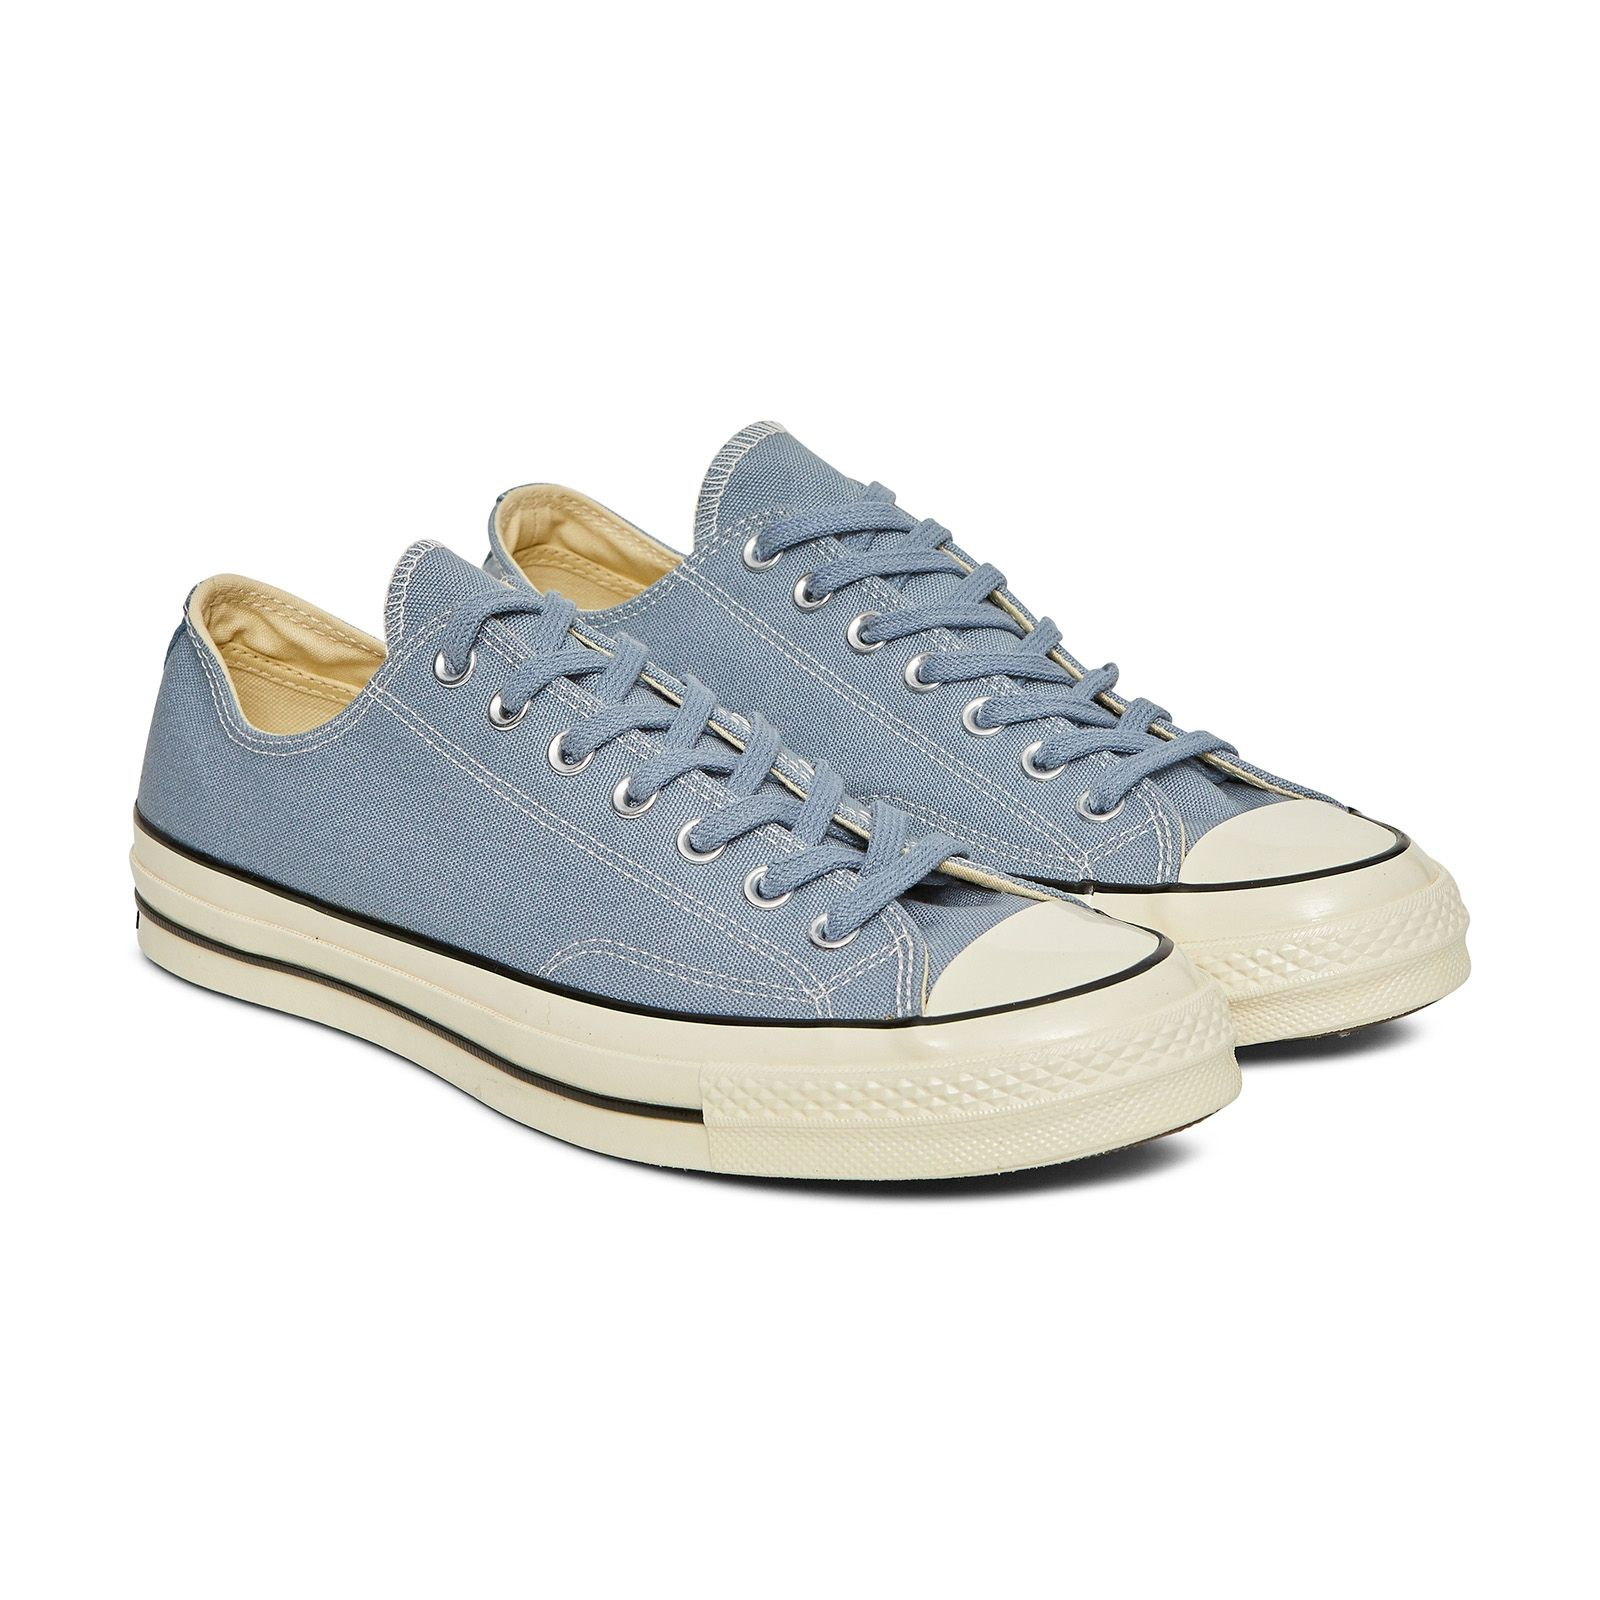 Chuck Taylor All Star OX 70's Vintage Canvas Sneakers